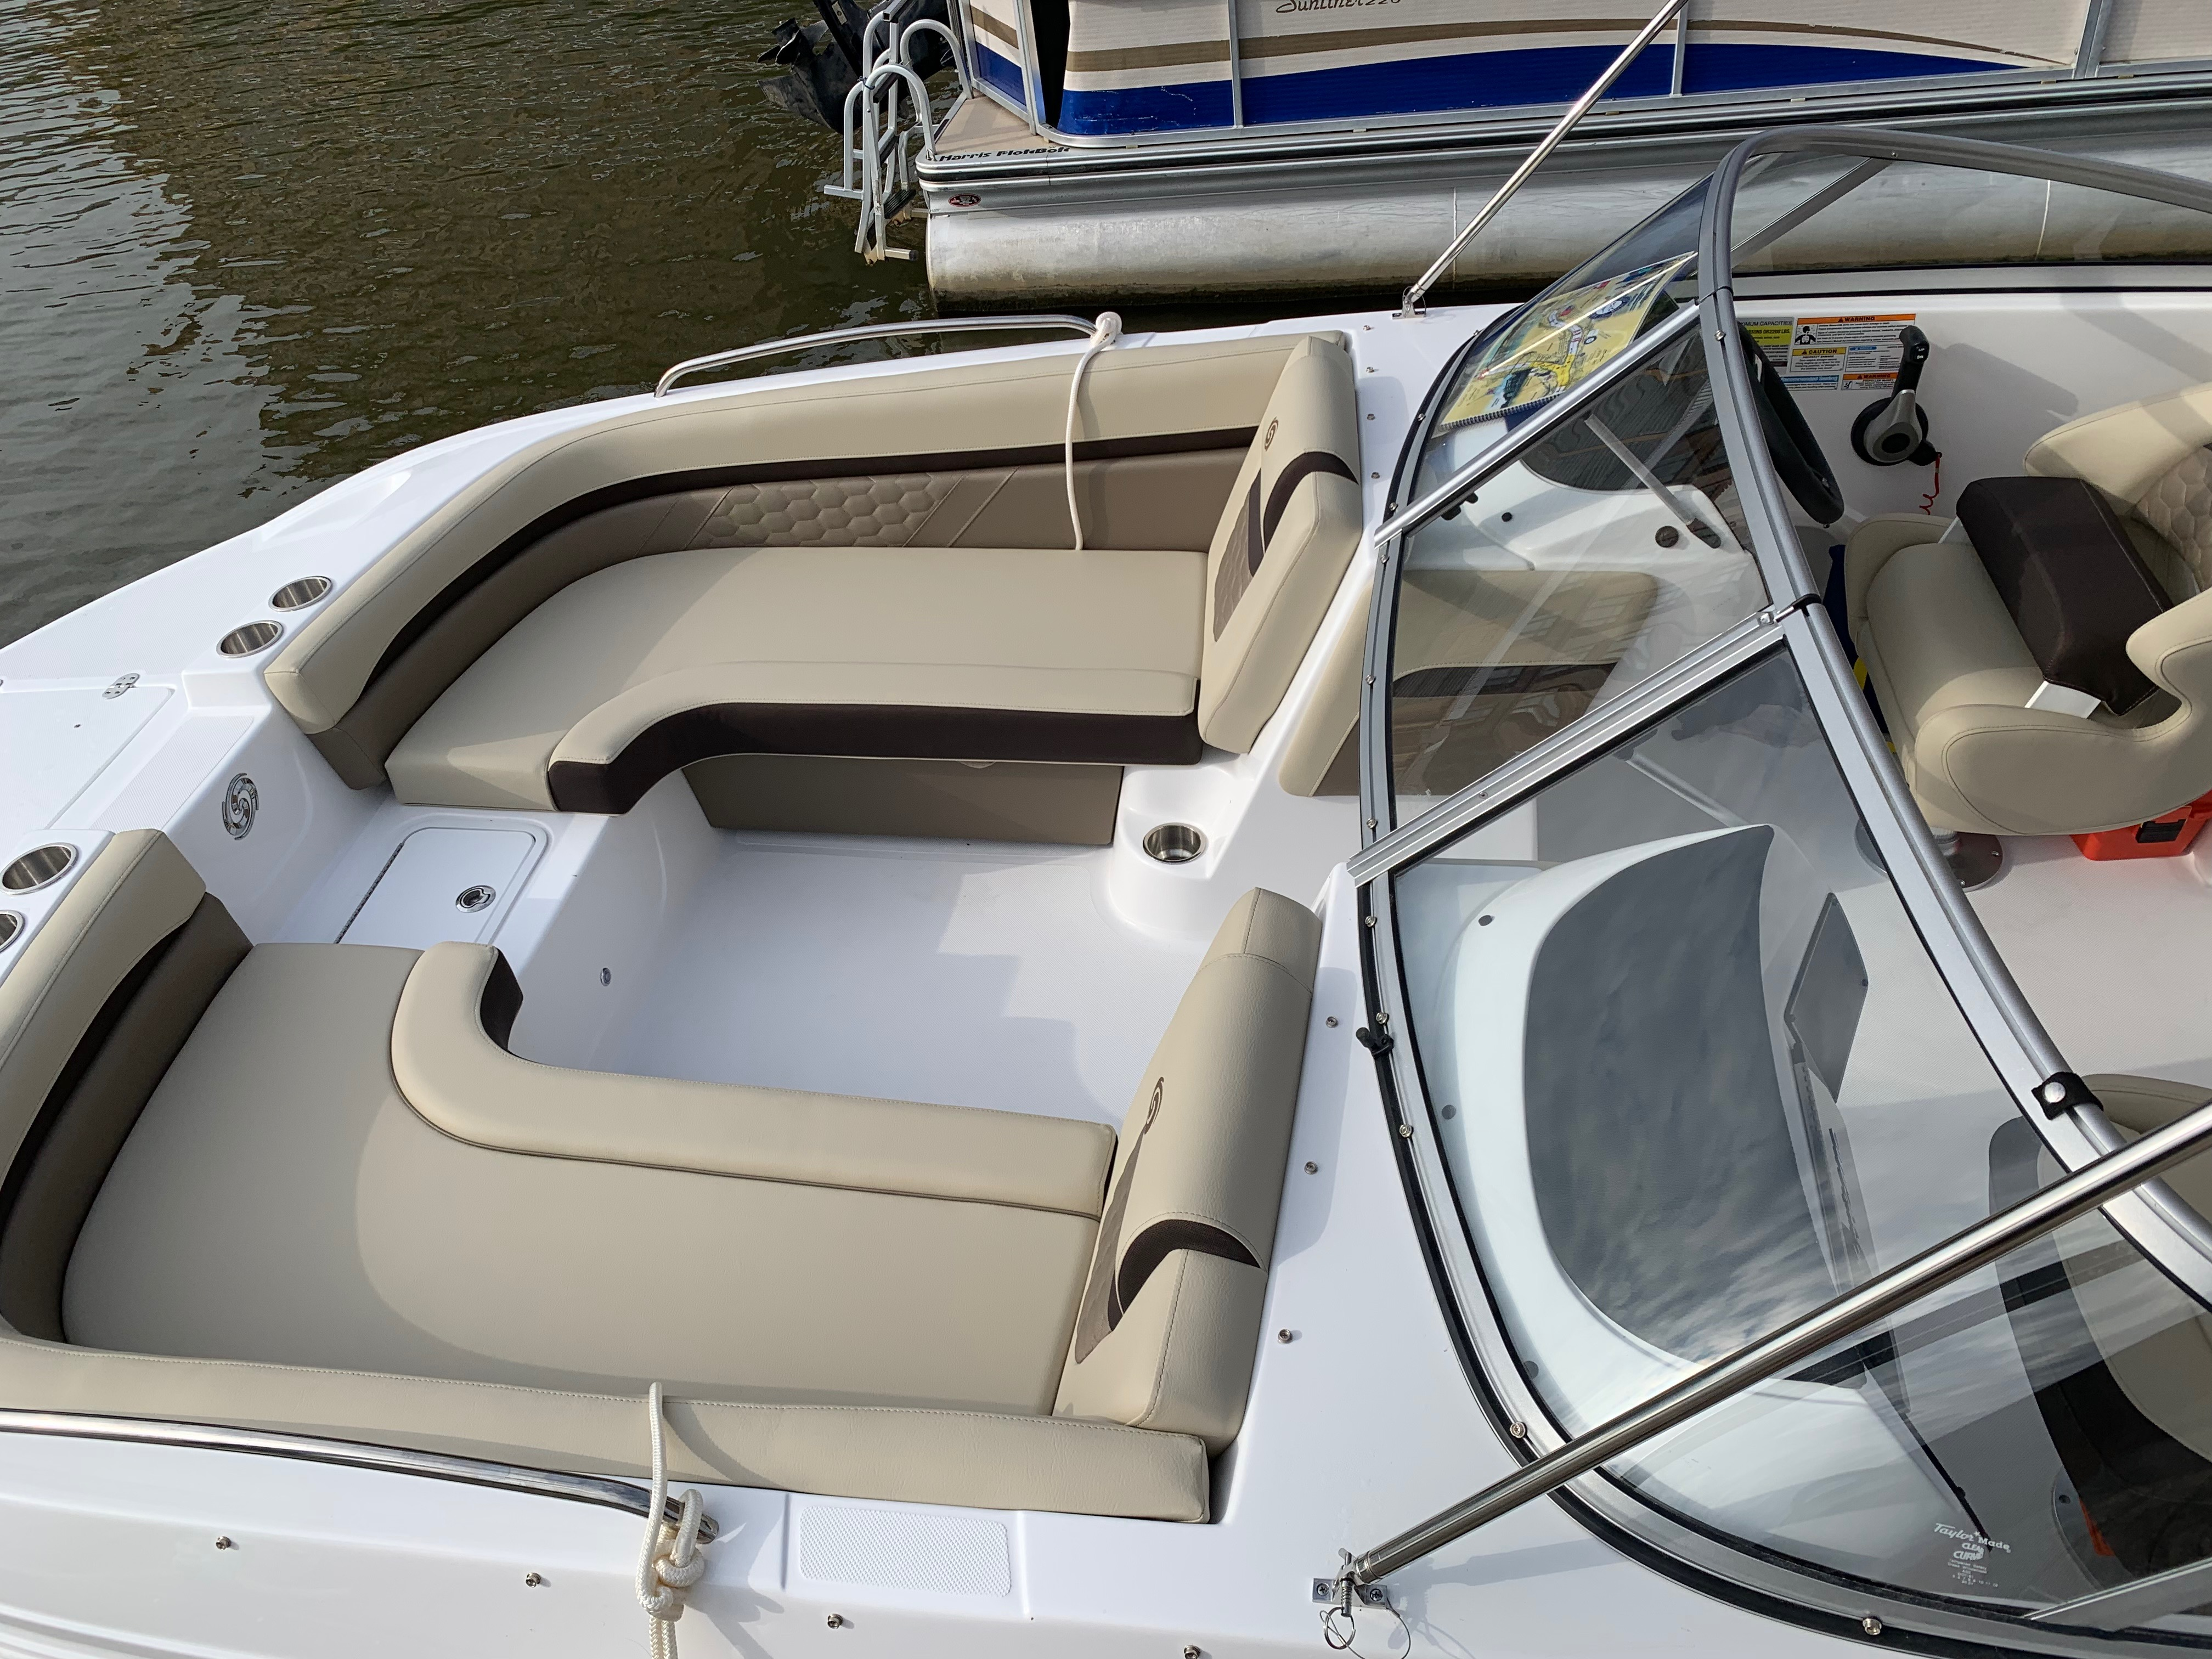 Dragonfly (Deck Boat; 2019 Hurricane SD 217 - 150HP)